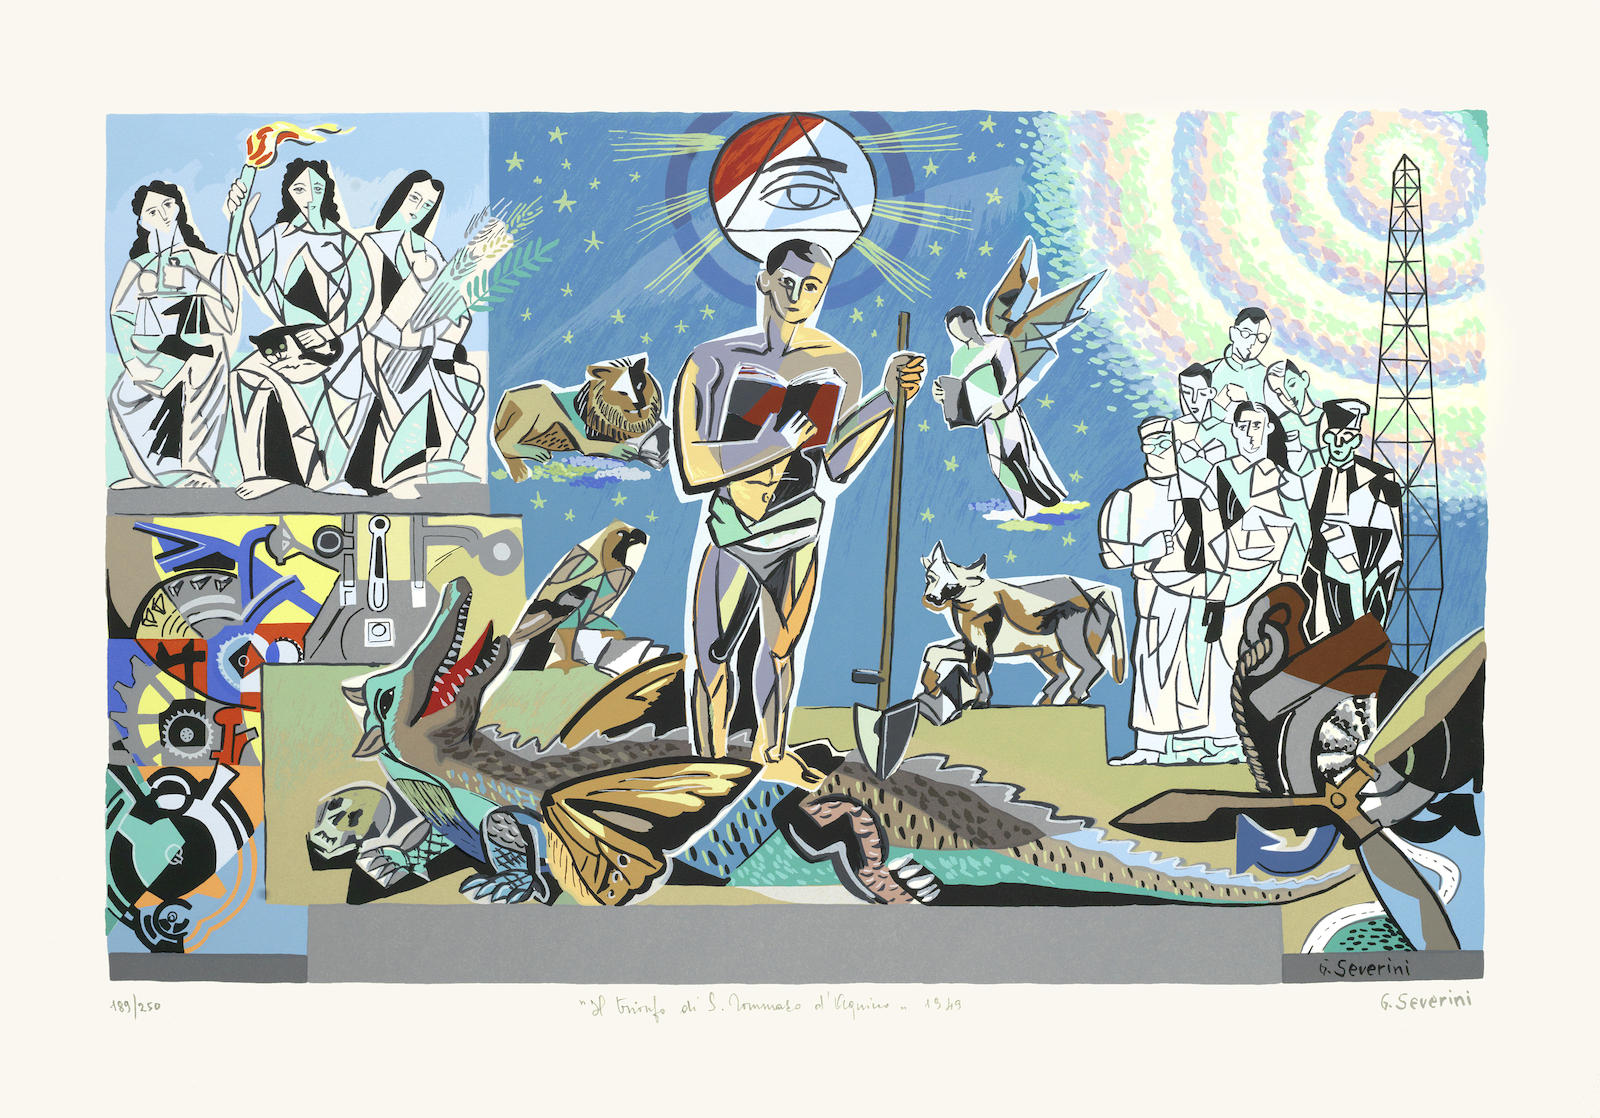 Gino Severini-After Gino Severini - Una ricerca di radici folio-1982